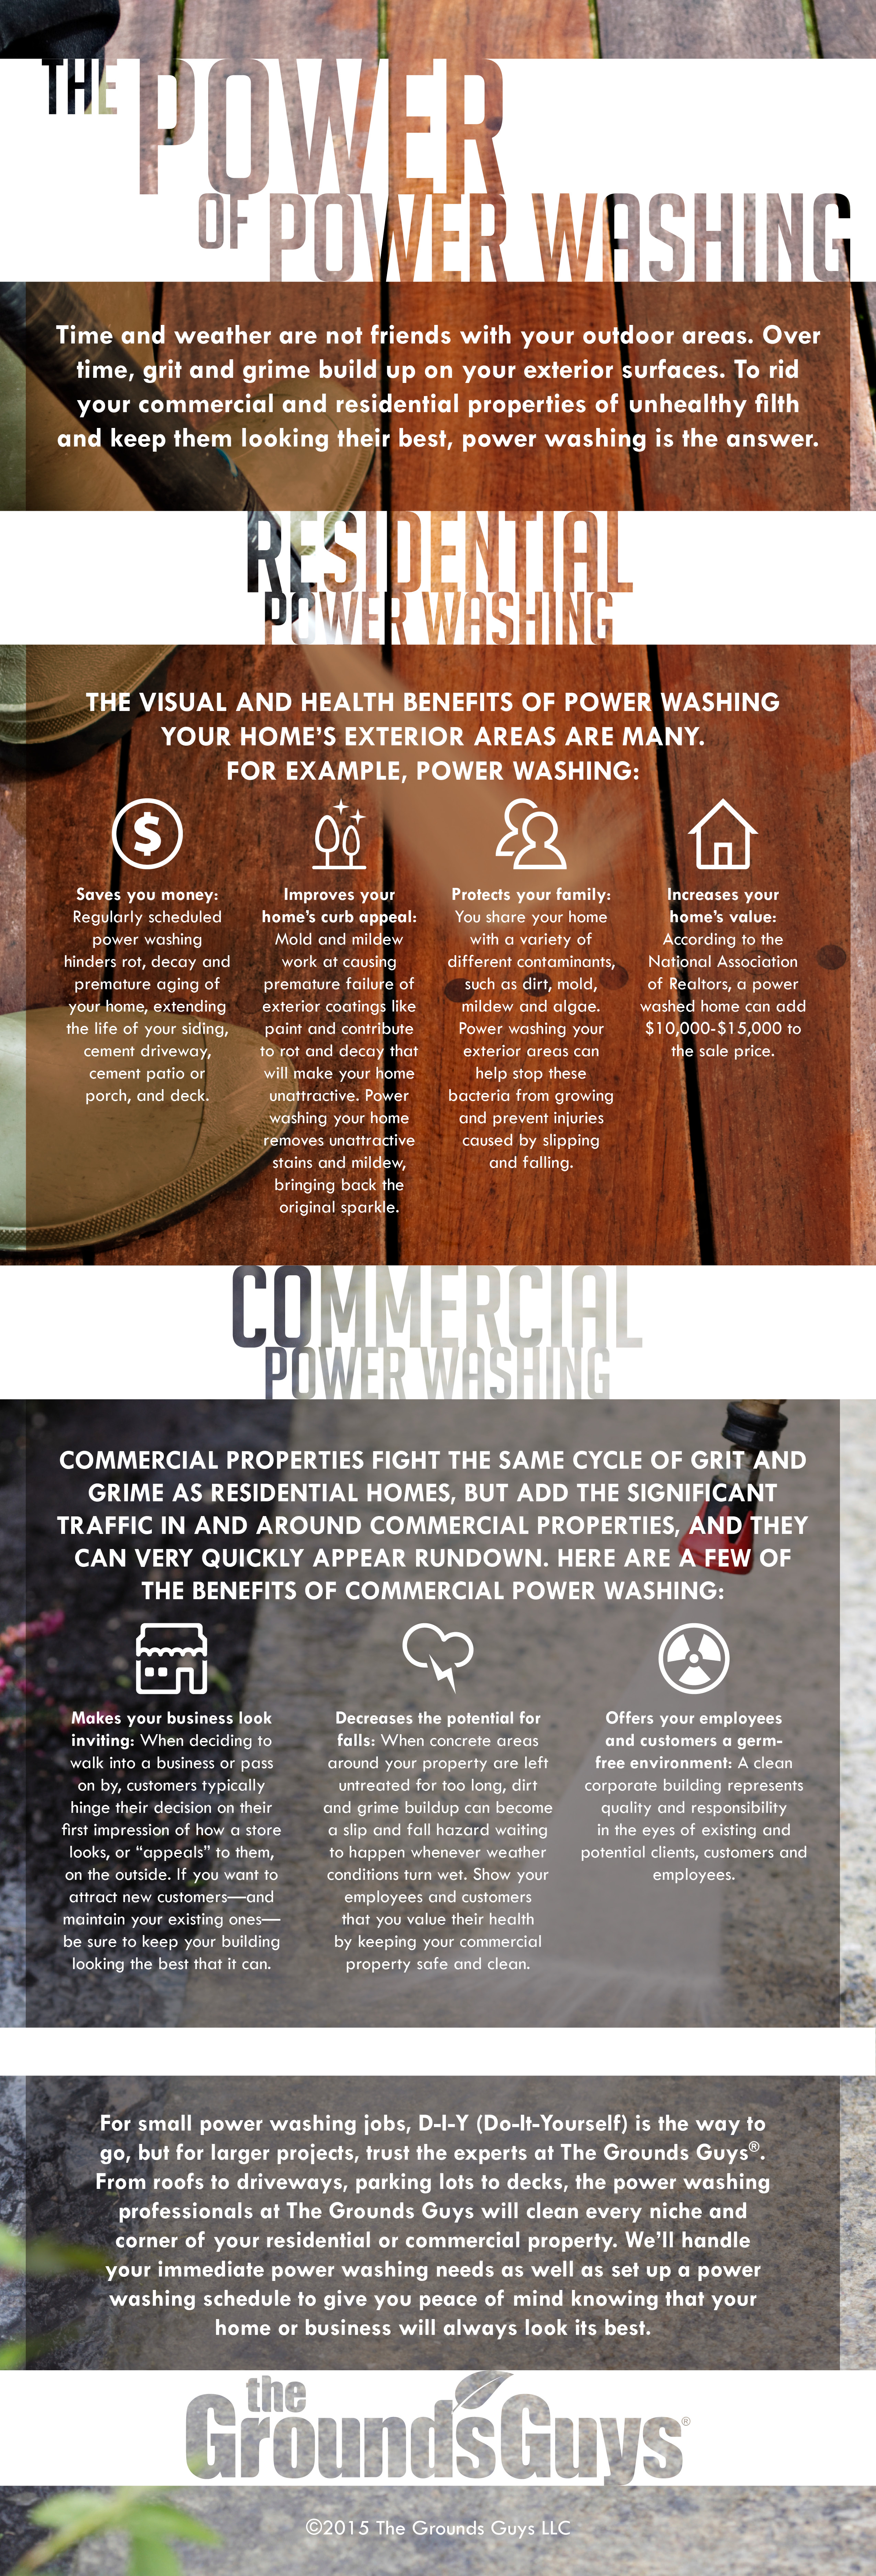 The Power of Power Washing infographic